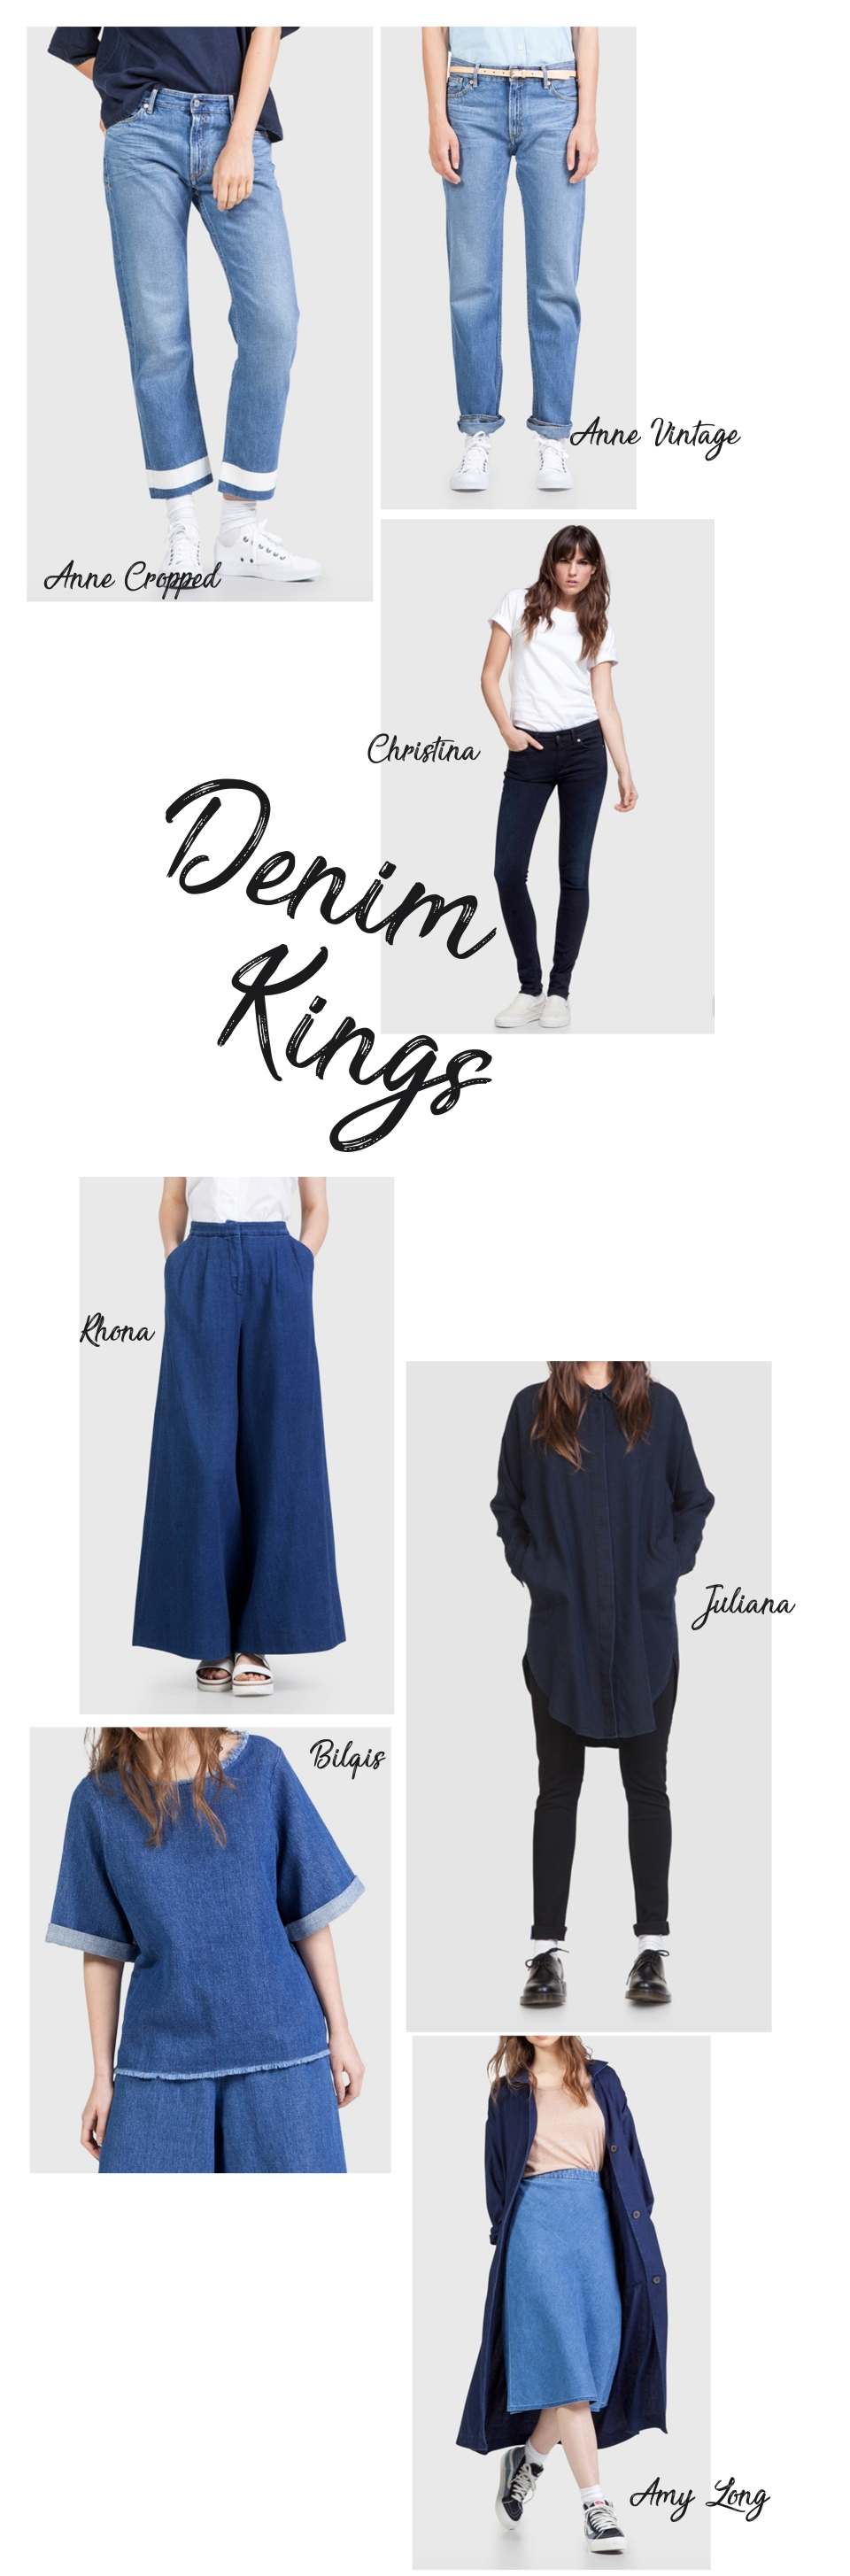 kings of denim womens round up